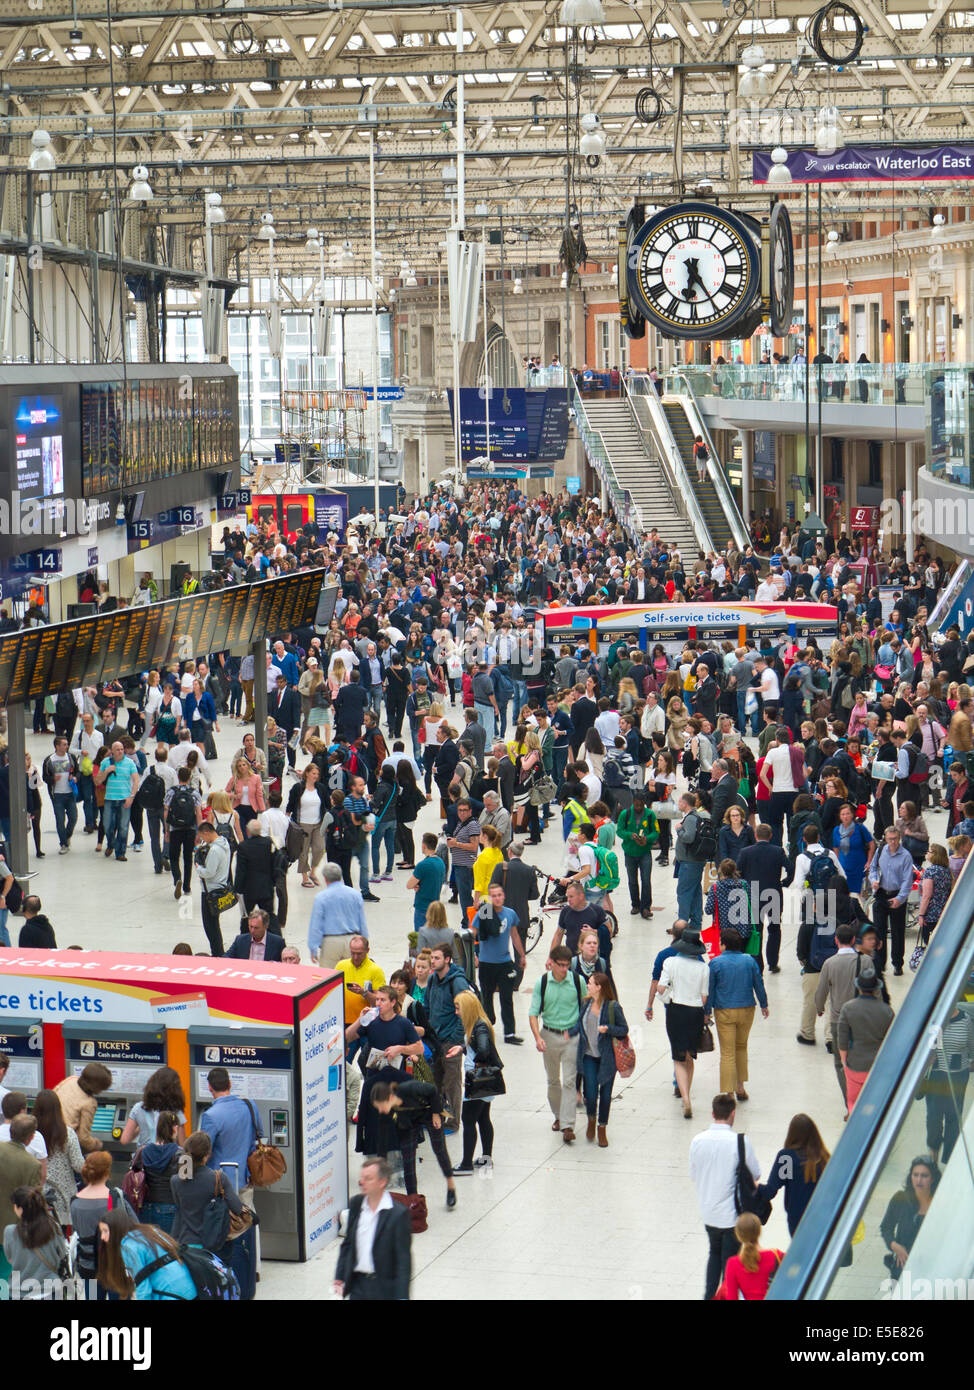 WATERLOO STATION Busy concourse crowds queues commuters visitors London Waterloo station London EC1 - Stock Image